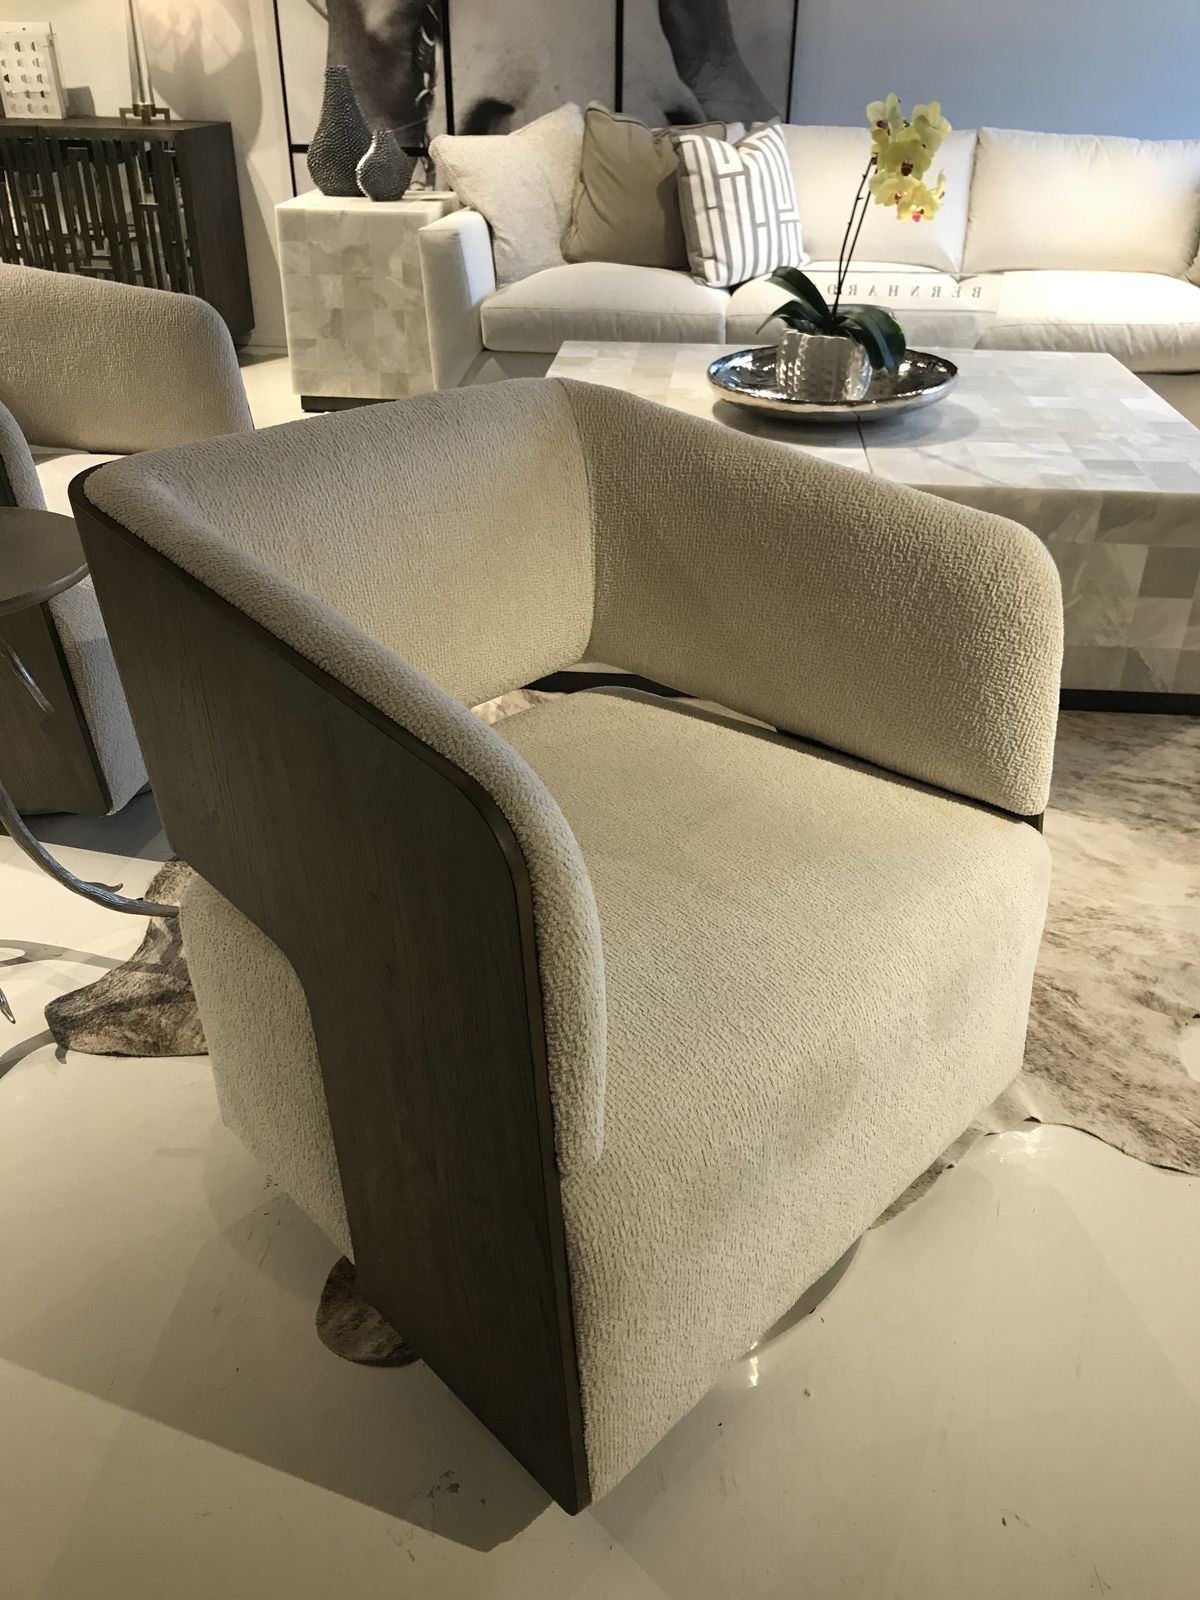 Fashion Week for Furniture Recliner chair, Furniture